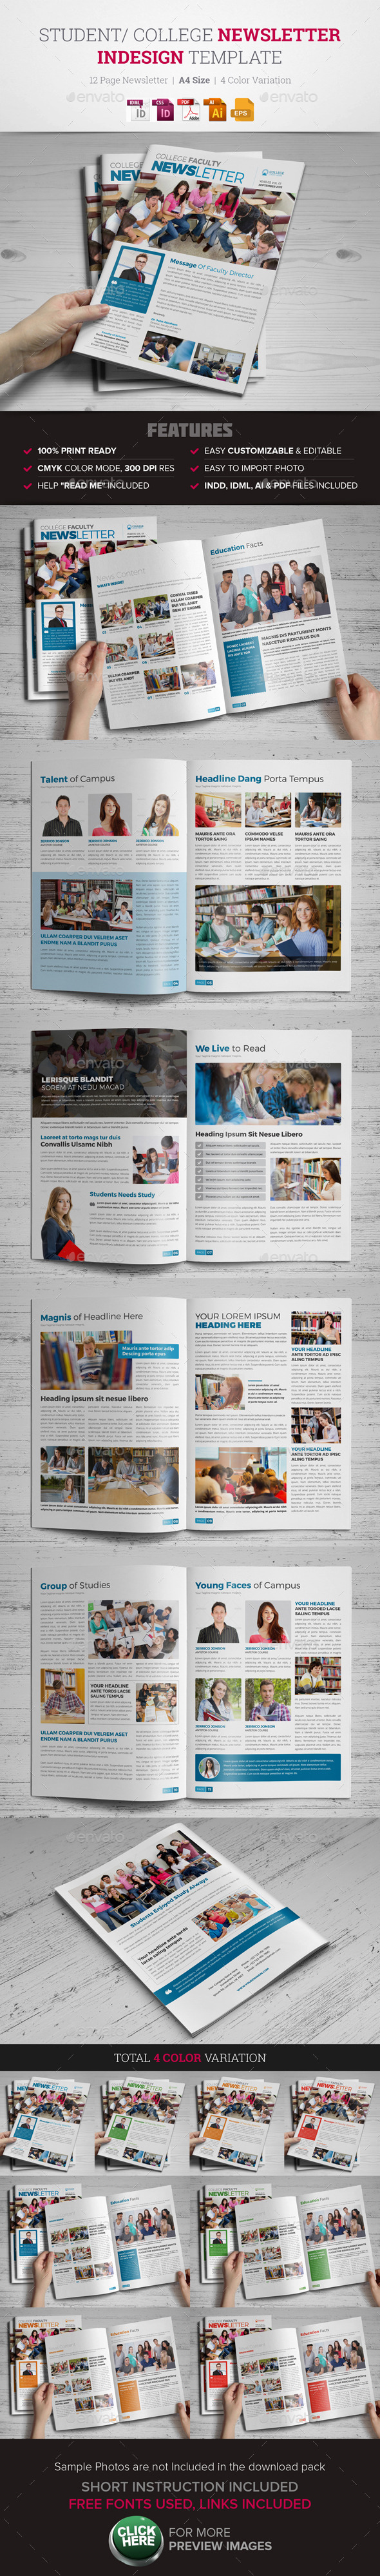 Student College Newsletter Indesign Template - Newsletters Print Templates